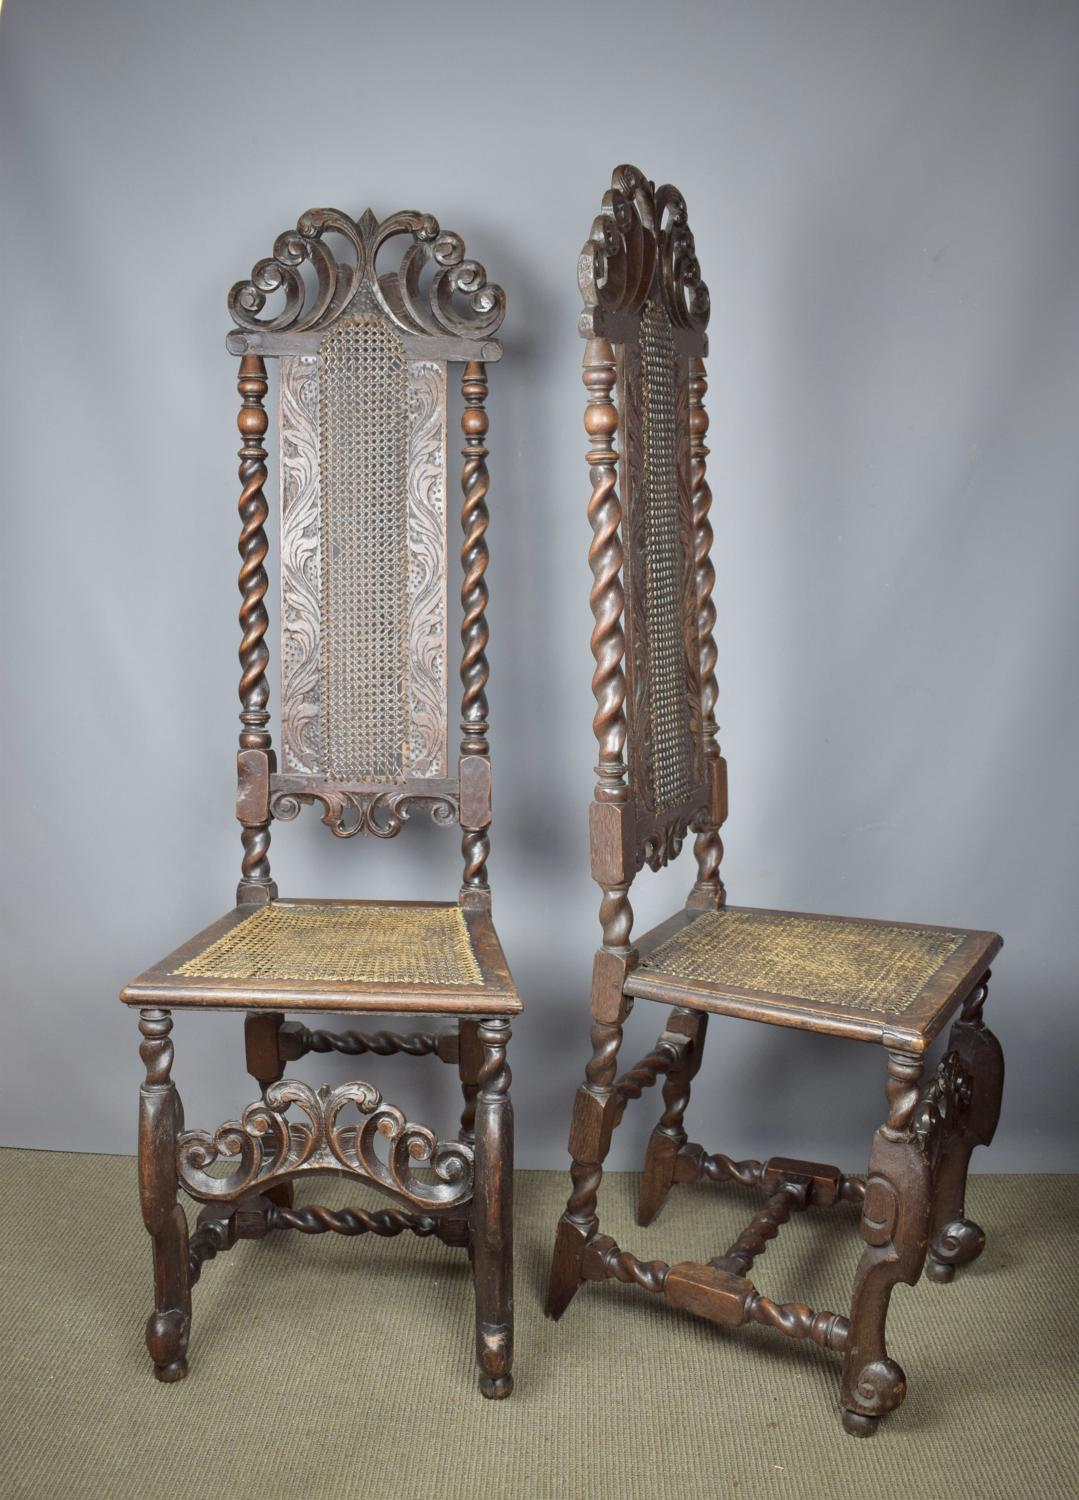 Pair of William & Mary Caned High Back Chairs